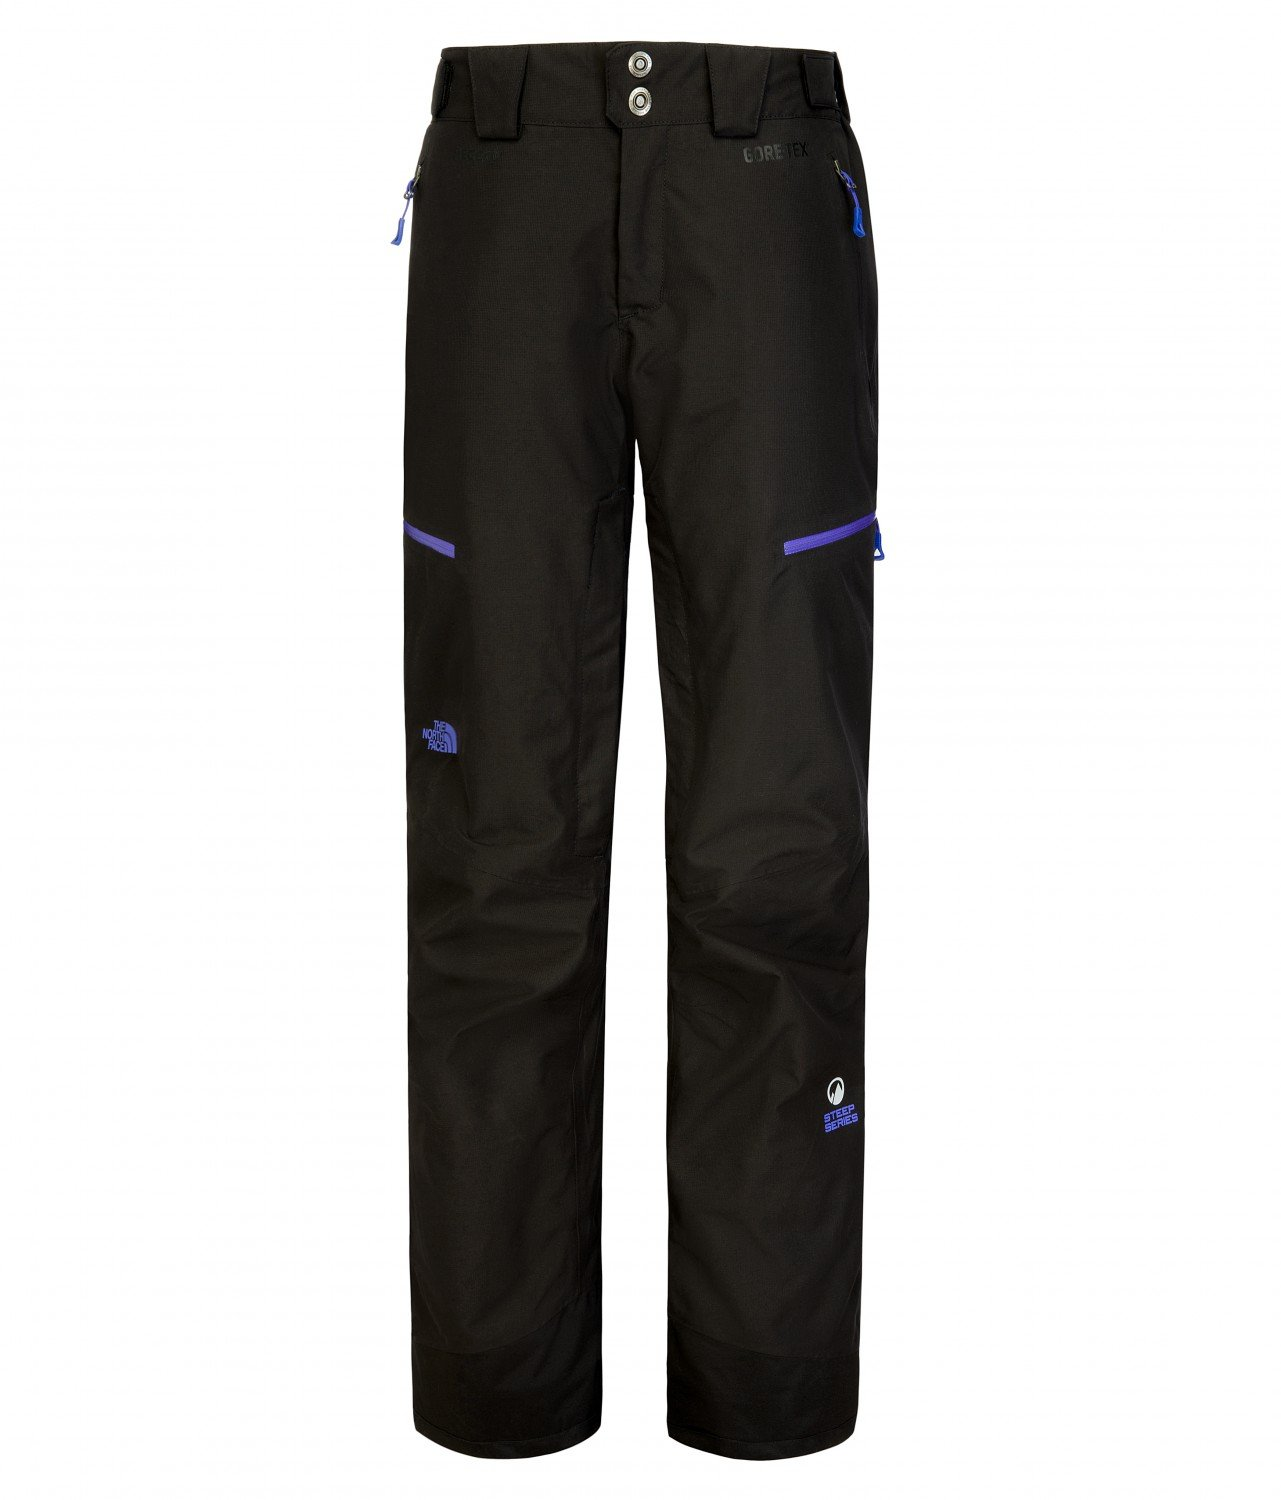 Womens Nfz Insulated Pant tnf black günstig kaufen